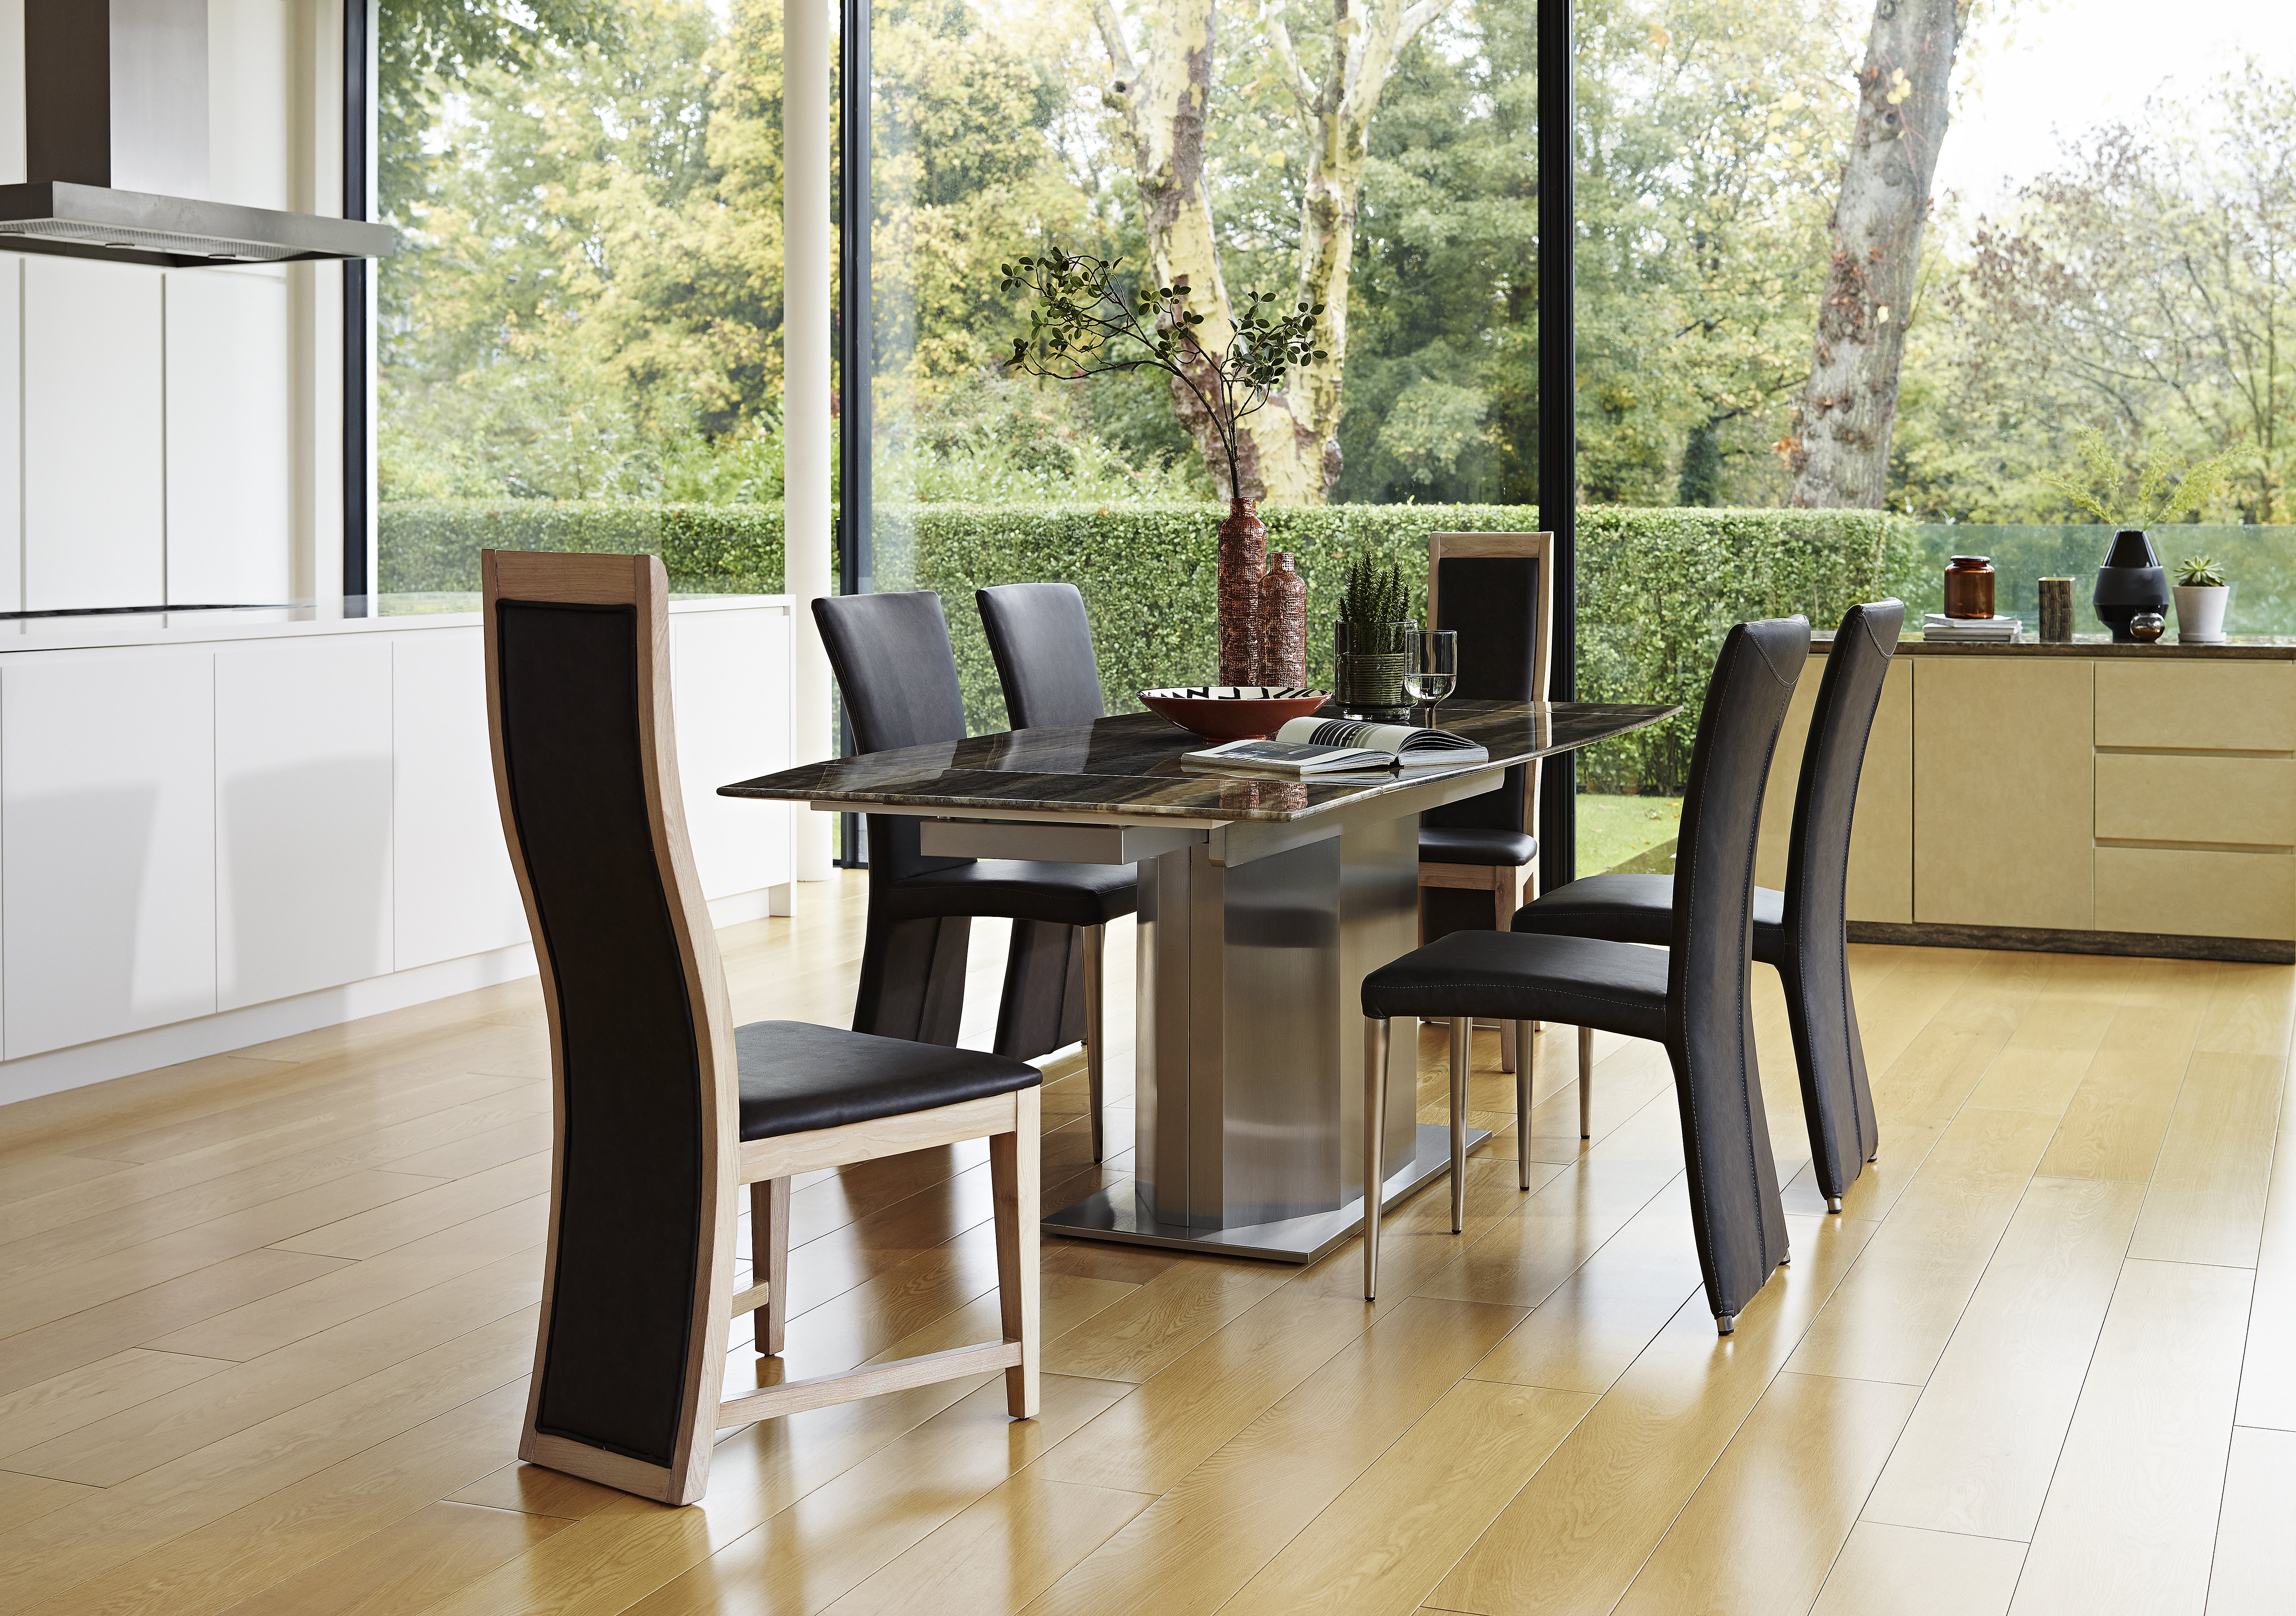 Furniture Village Dining Tables long island extending dining table - furniture village